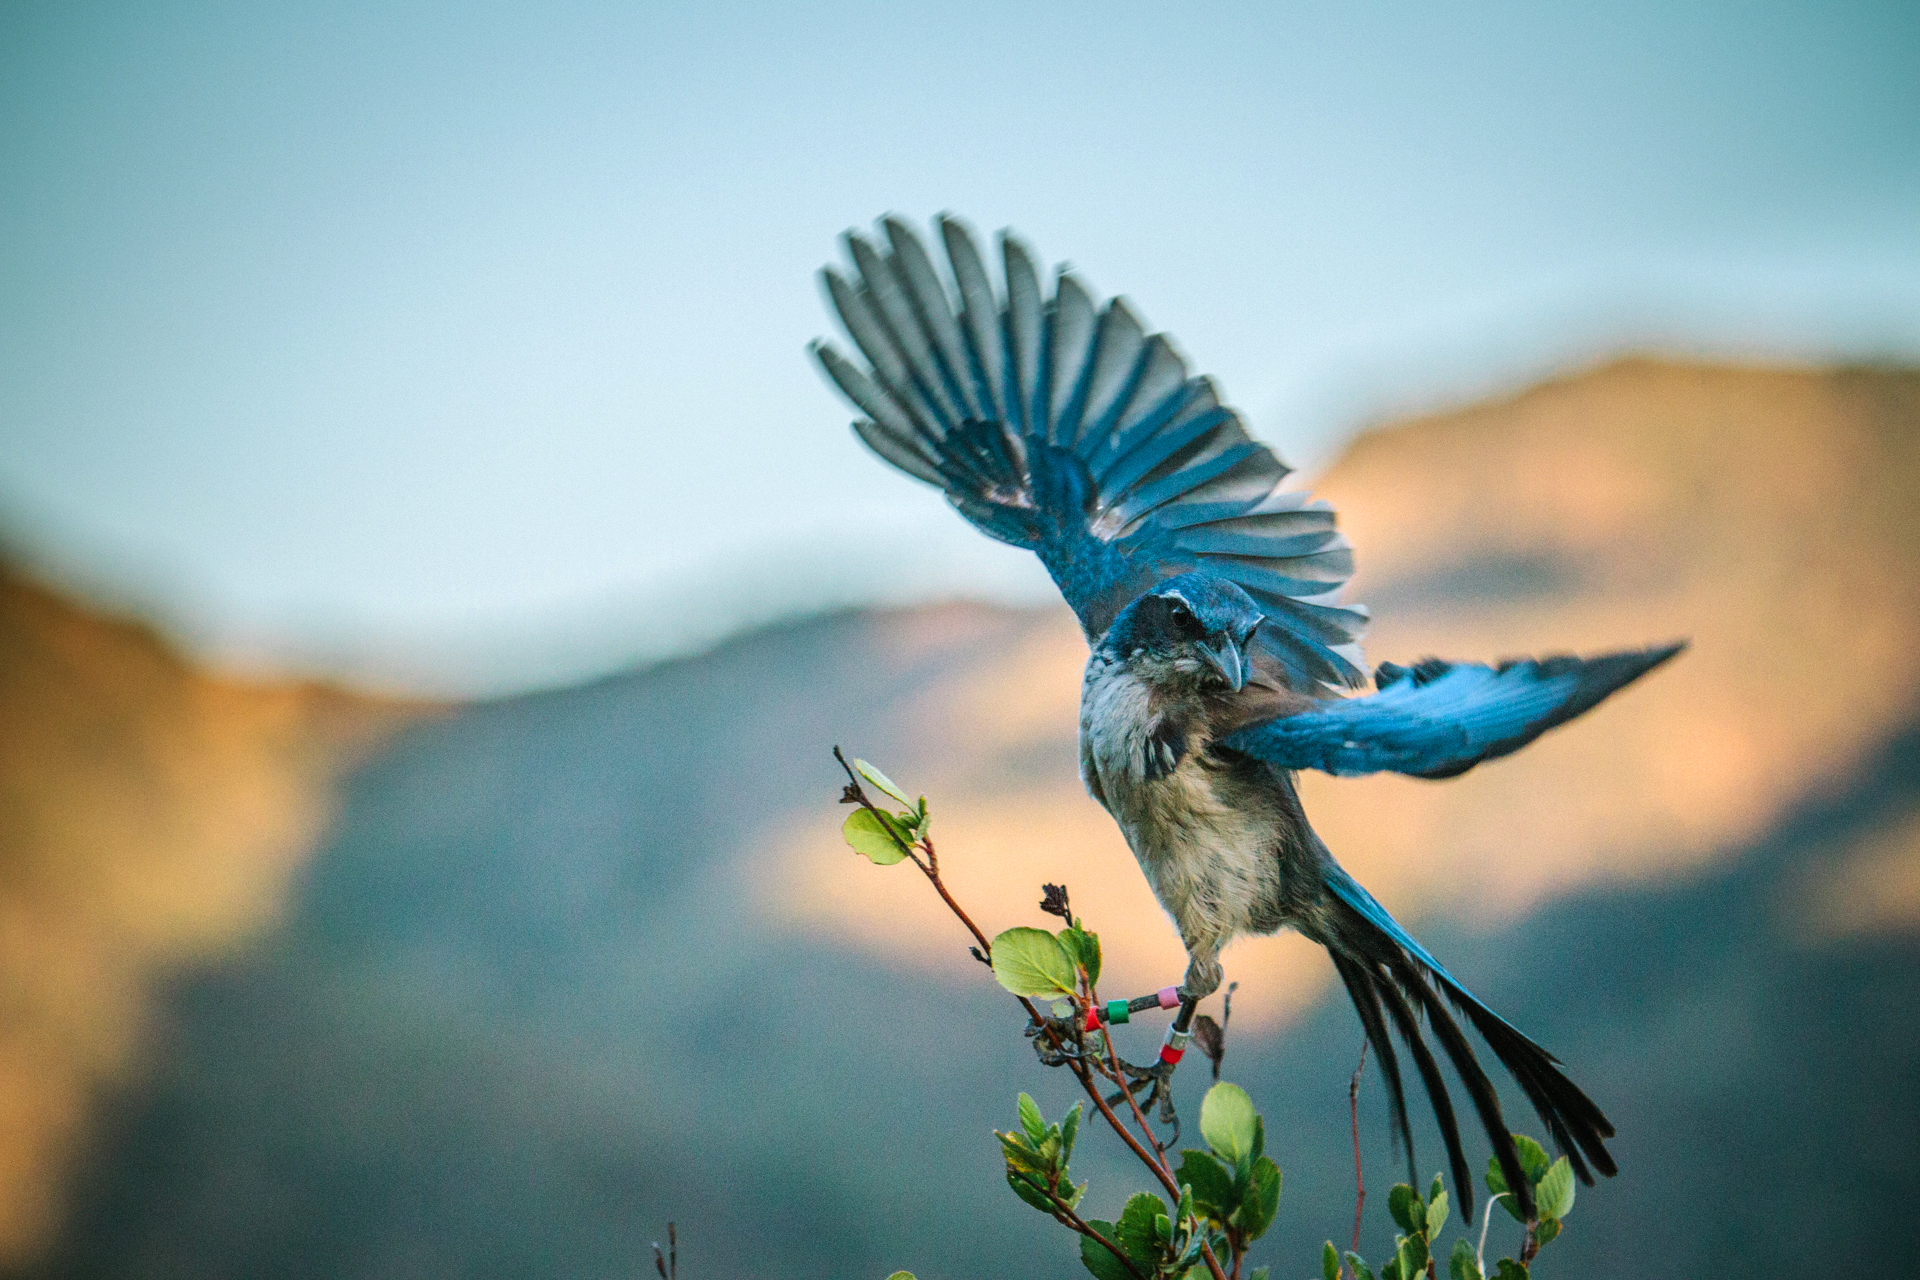 NCM 16006 Island Scrub Jays and Climate